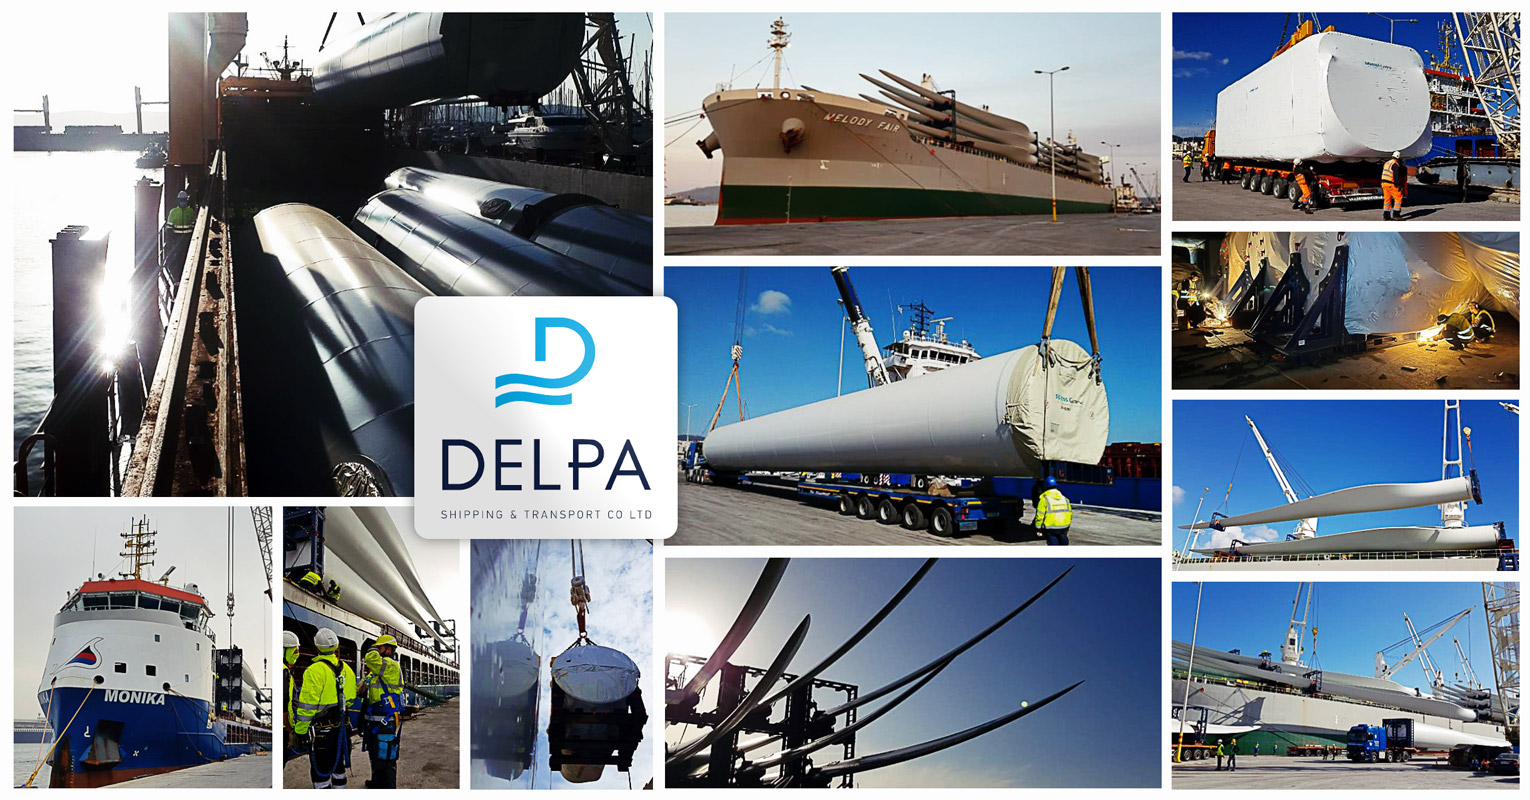 Delpa Handled Two Wind Turbine Projects via 7 vessels, Moving 21 WTG Sets with Blades as Long as 72m and Nacelles Weighing up to 101mt